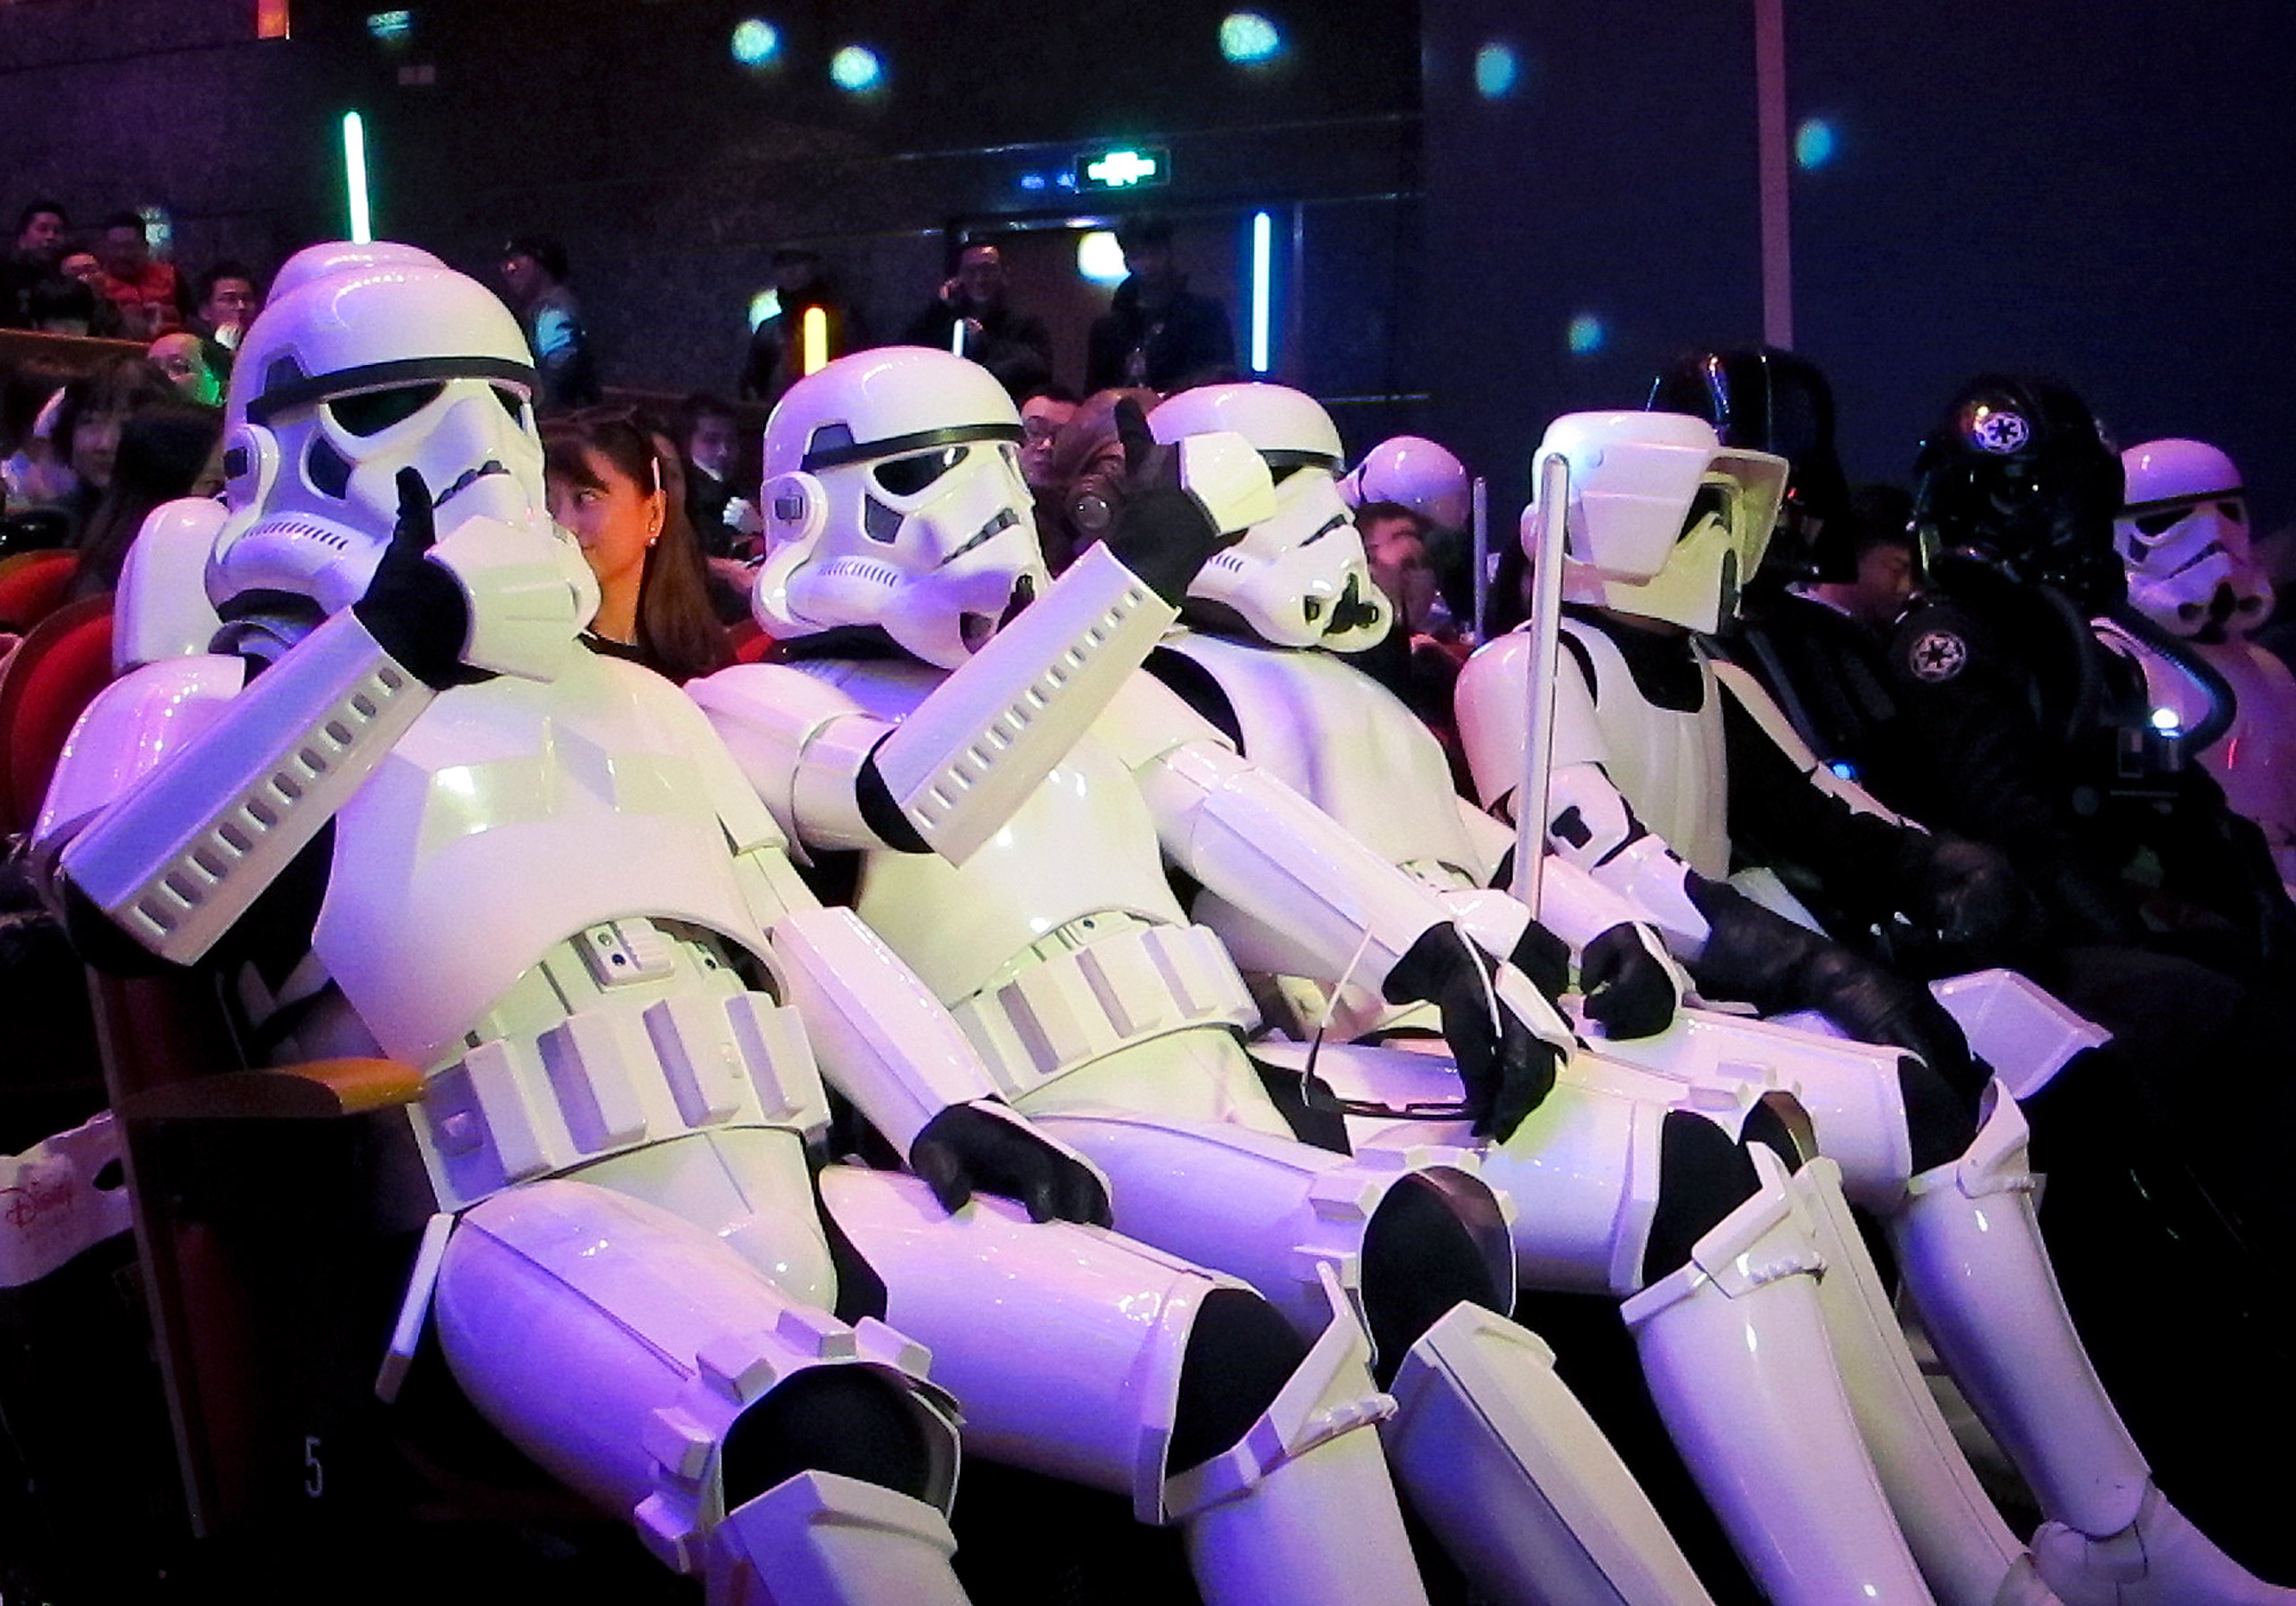 Chinese fans, dressed as Star Wars character Stormtroopers, gesture as they arrive for the premiere of  Star Wars: The Force Awakens  in Shanghai on Dec. 27, 2015.